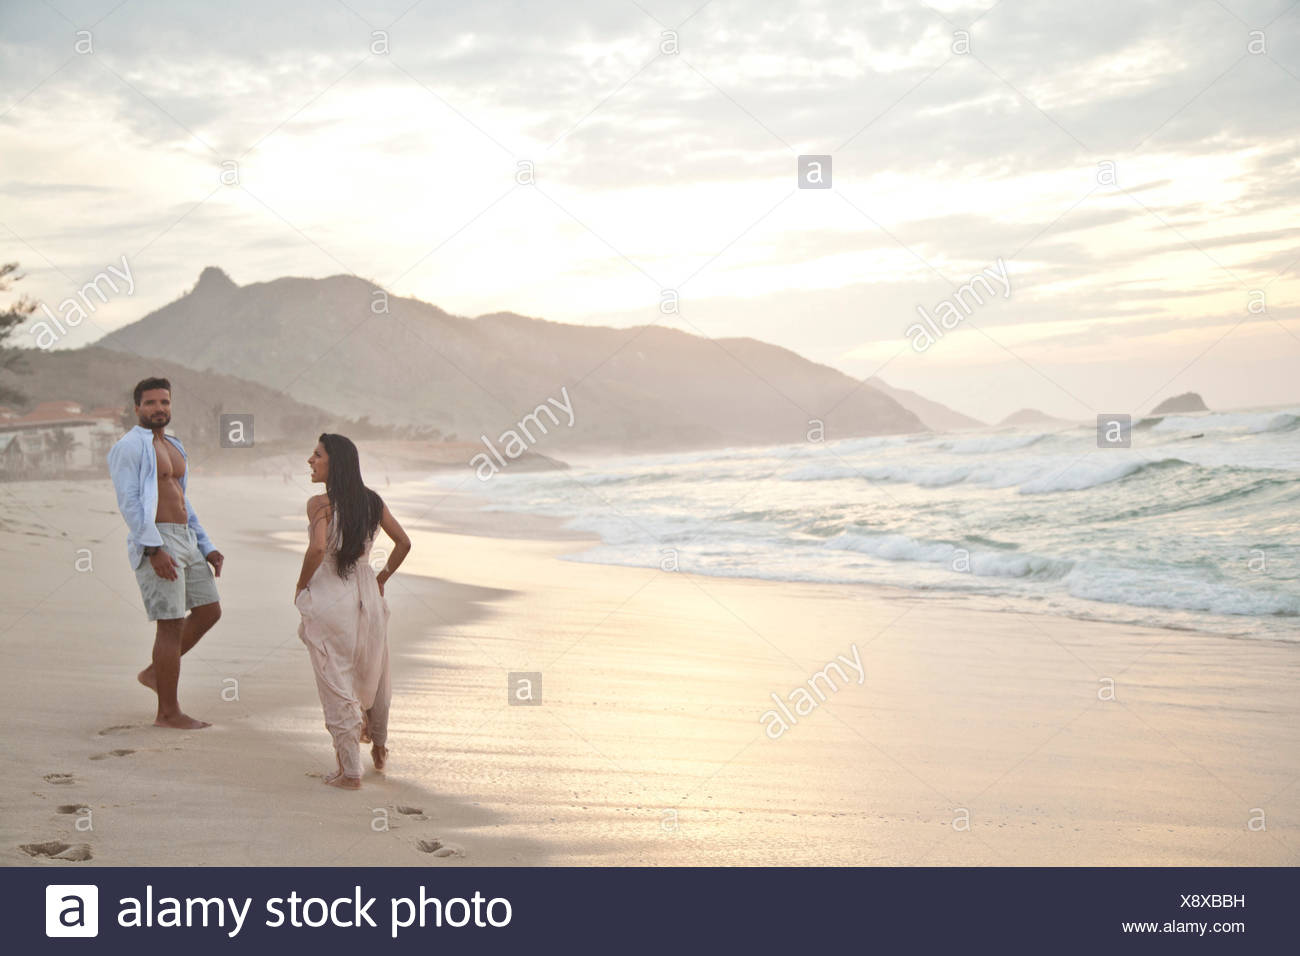 Mid adult couple on beach, Rio de Janeiro, Brésil Photo Stock